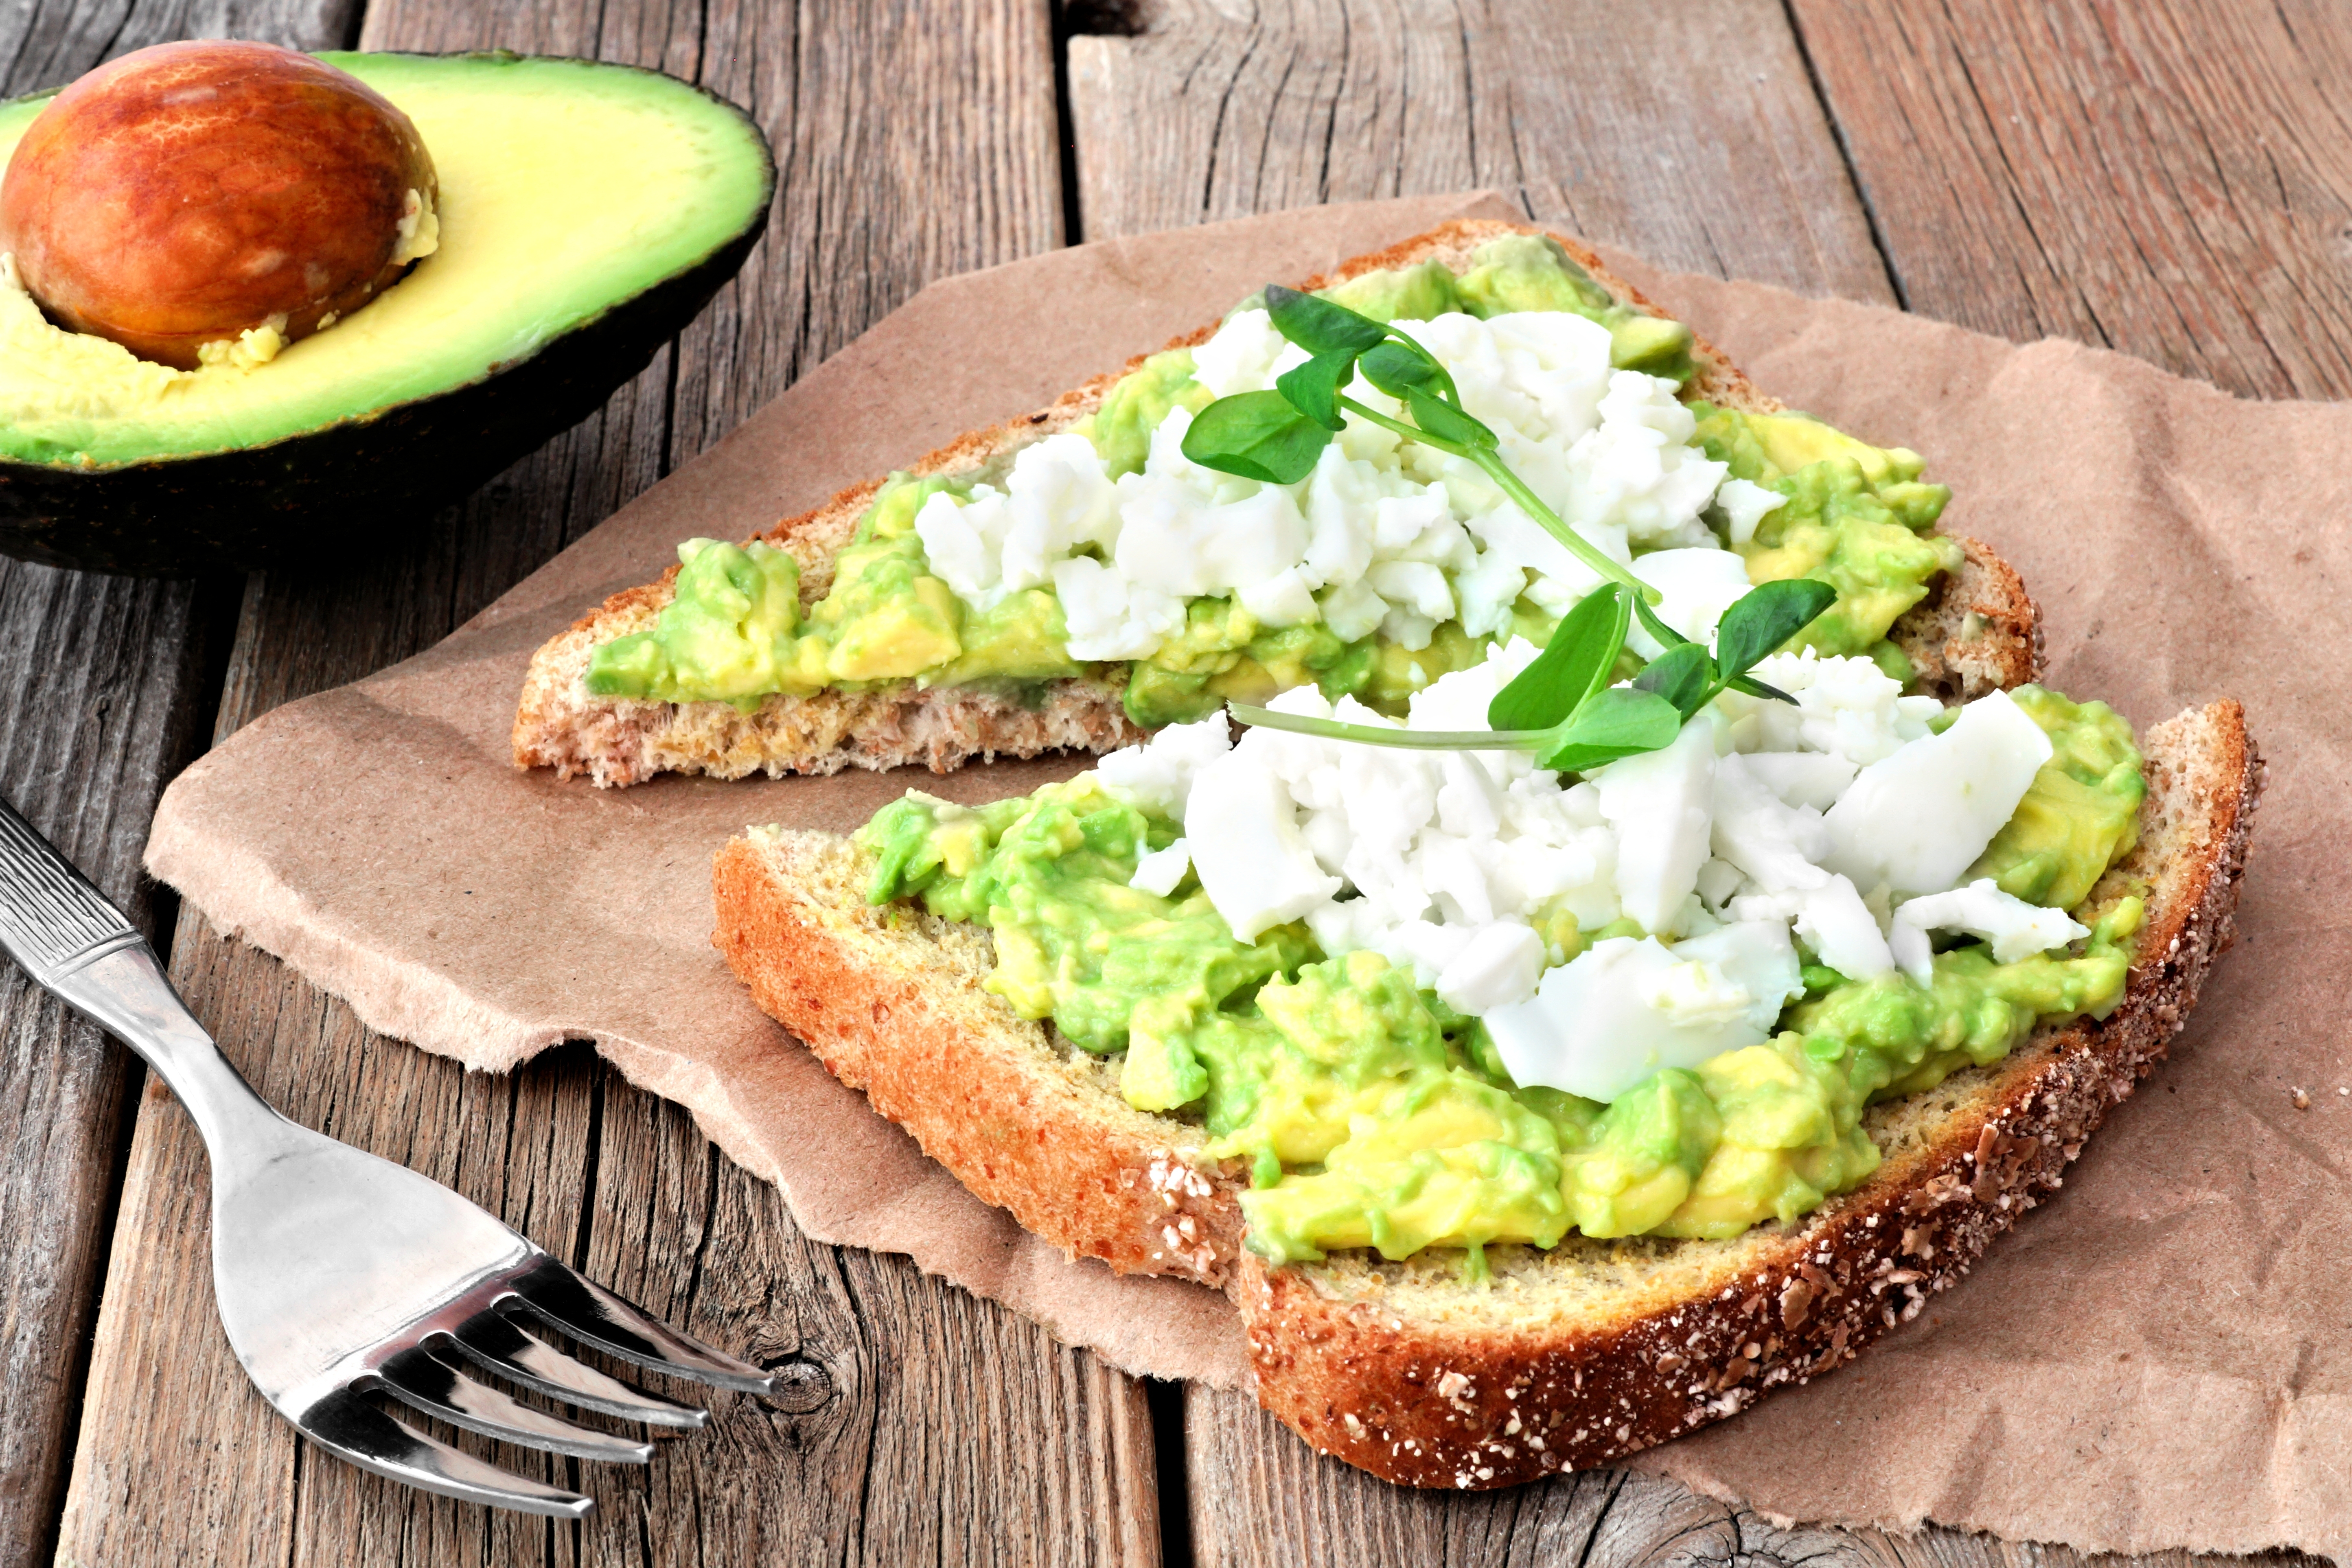 To Get Free Avocado Toast for a Whole Year, Just Buy This House